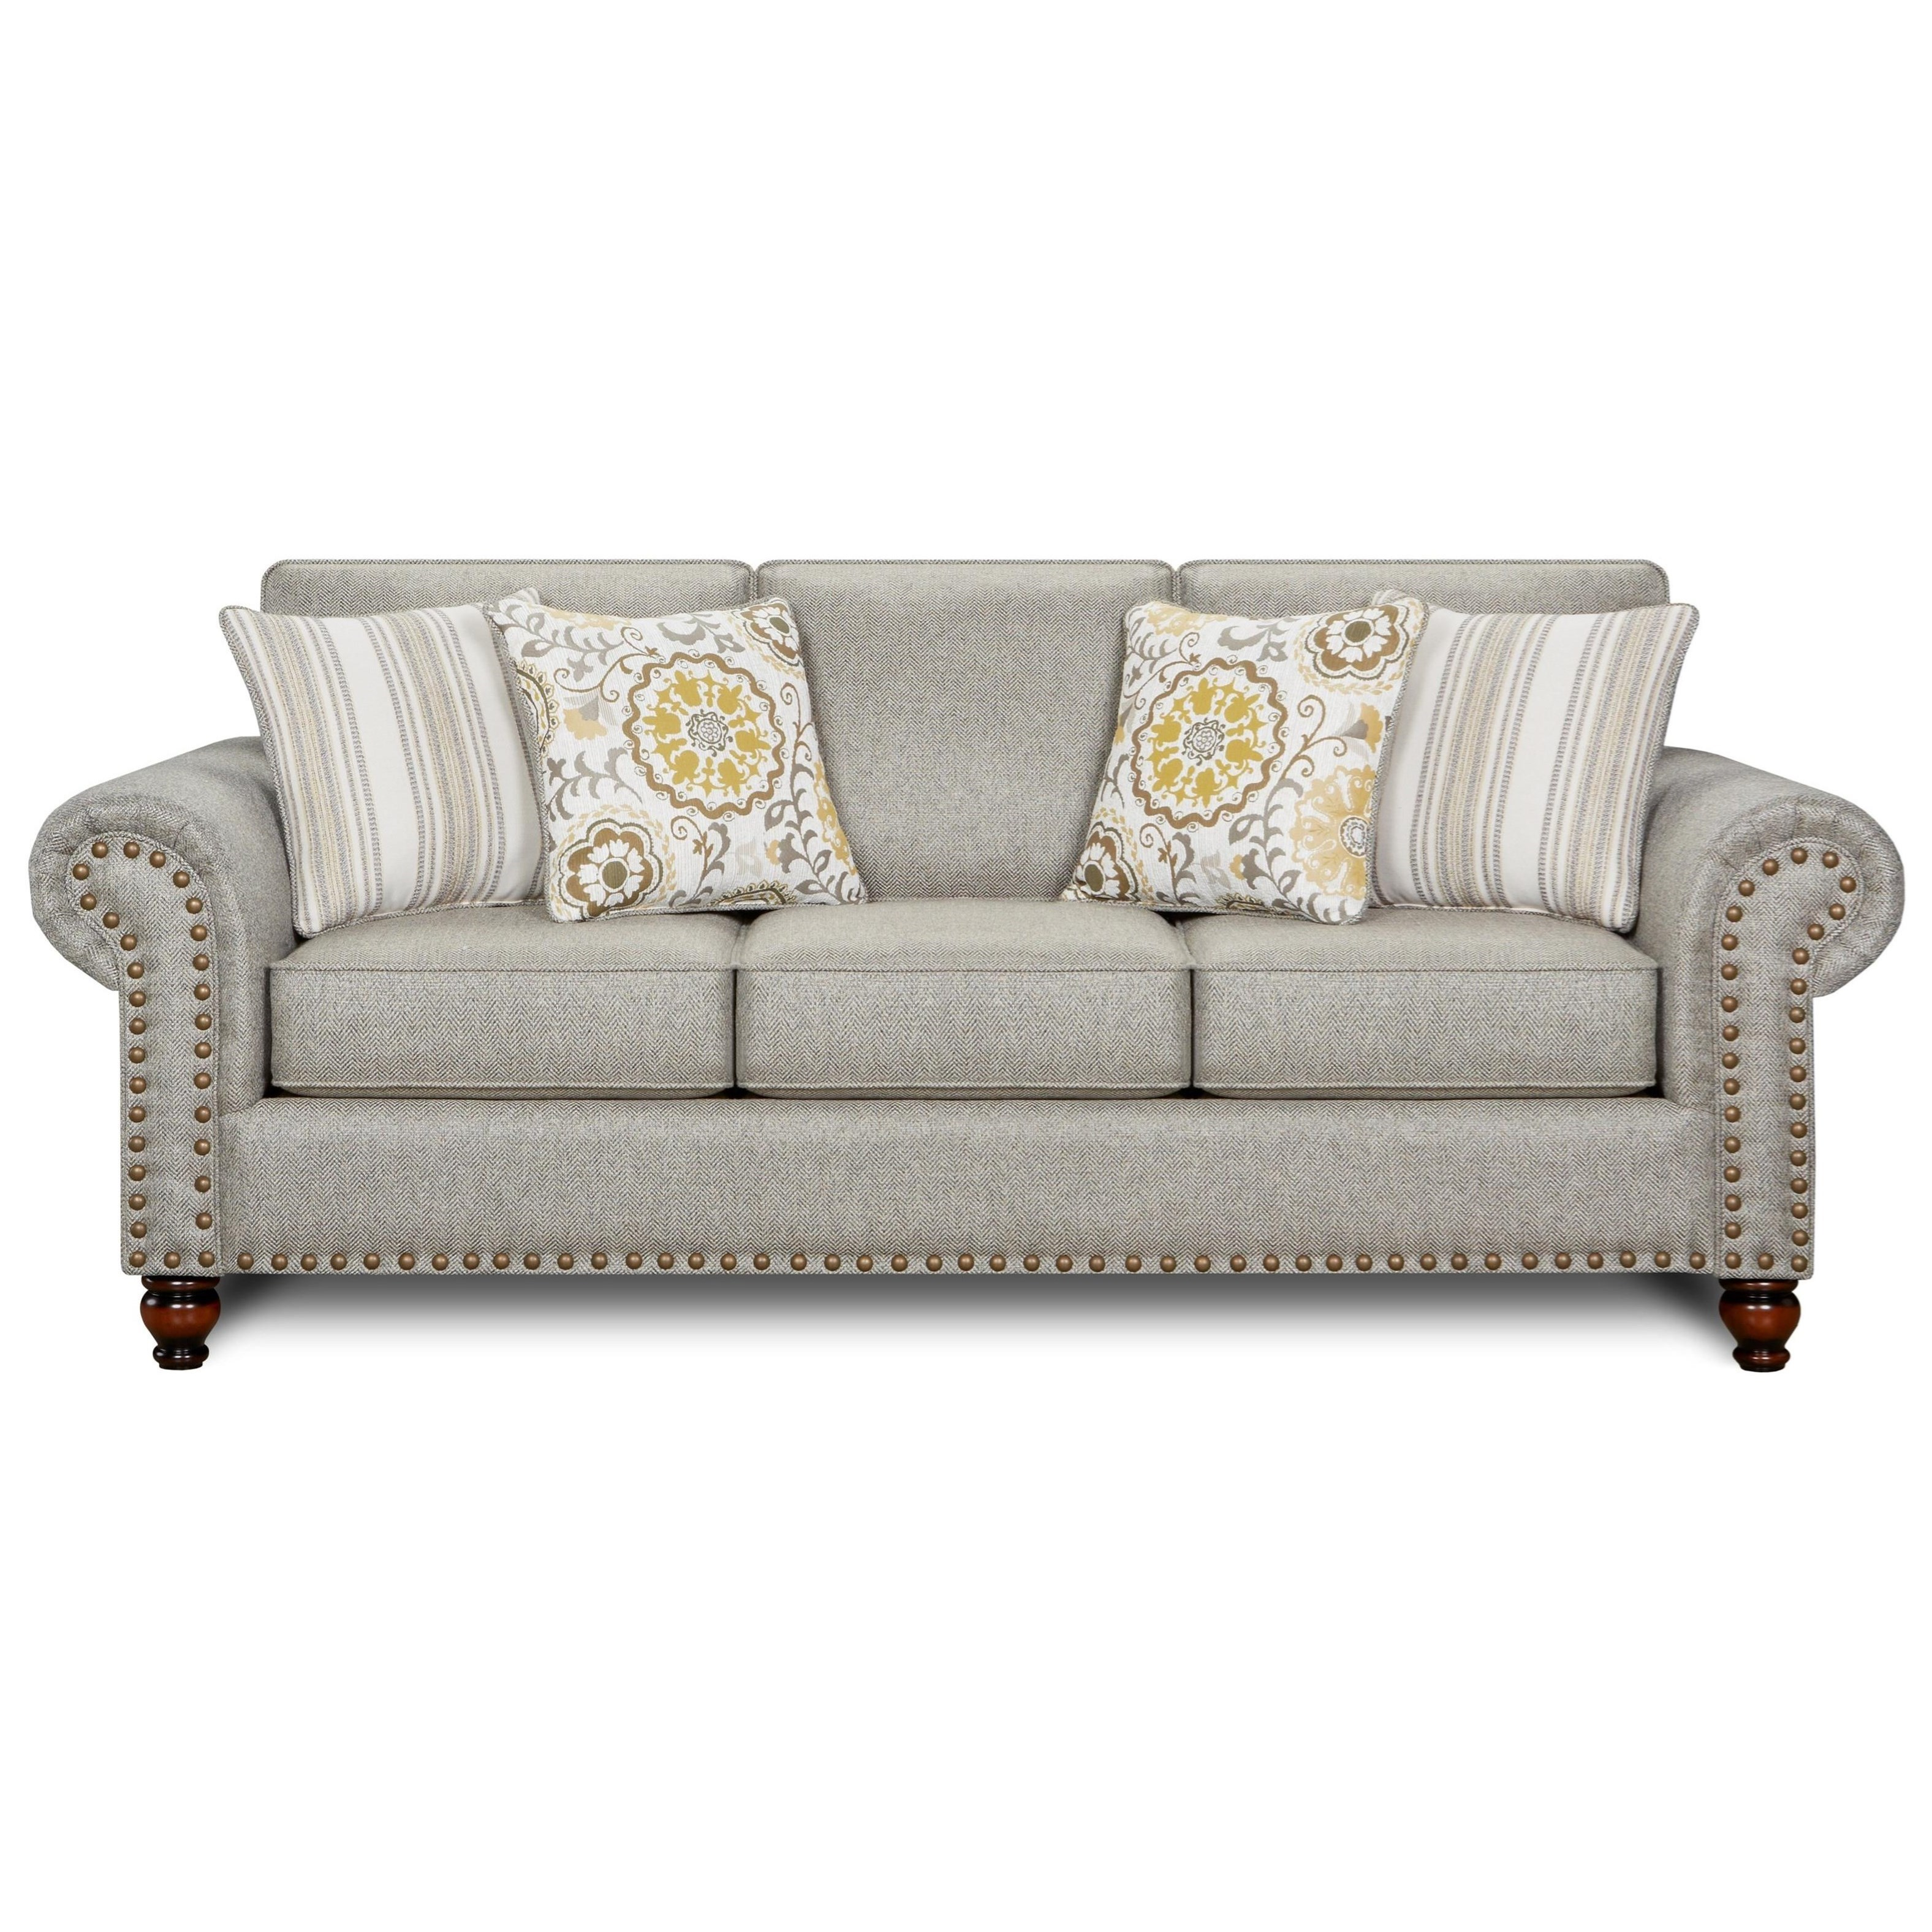 3110 Queen Sleeper Sofa by Fusion Furniture at Prime Brothers Furniture